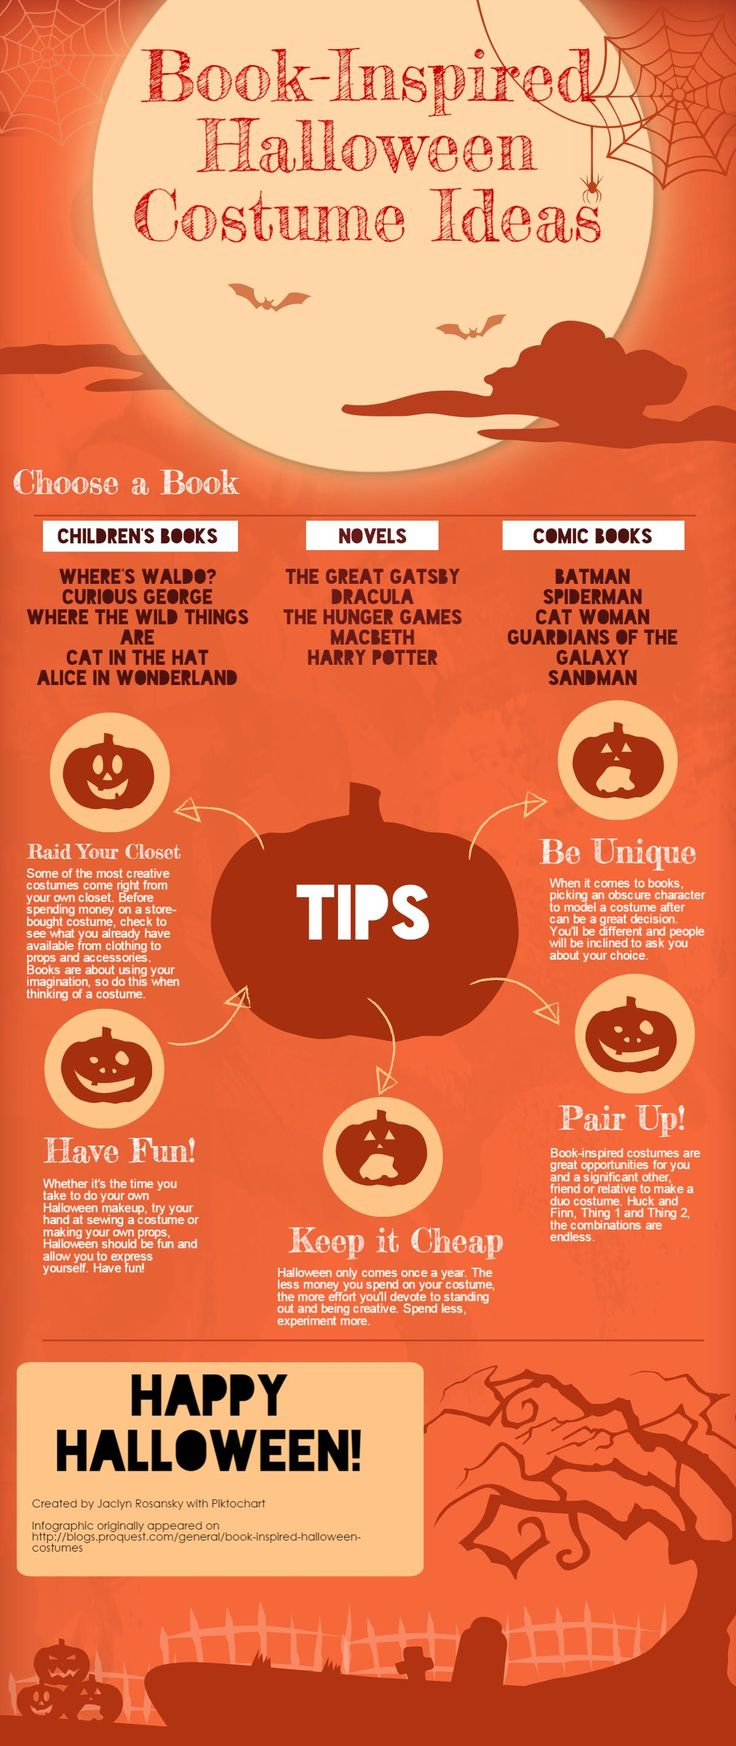 Share This » Blog Archive » BookInspired Halloween